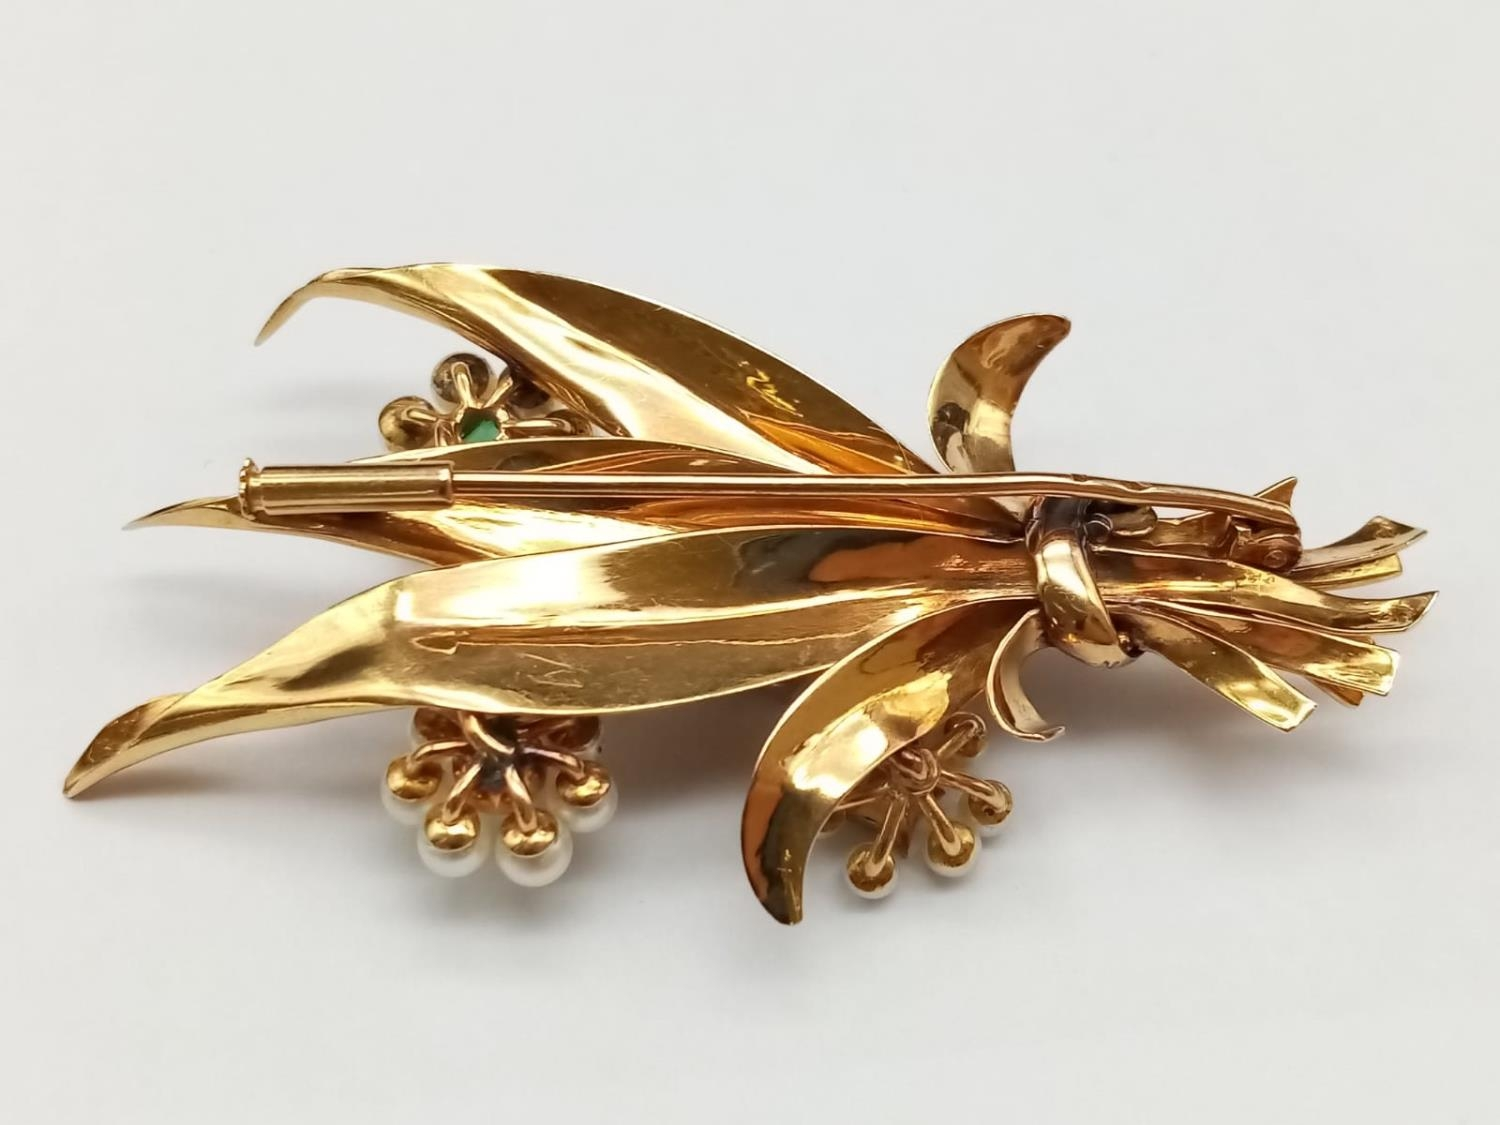 AN INTERESTING 18K GOLD BROOCH FASHIONED IN A FLEUR DE LYS STYLE WITH DIAMONDS, EMERALDS AND SEED - Image 3 of 5